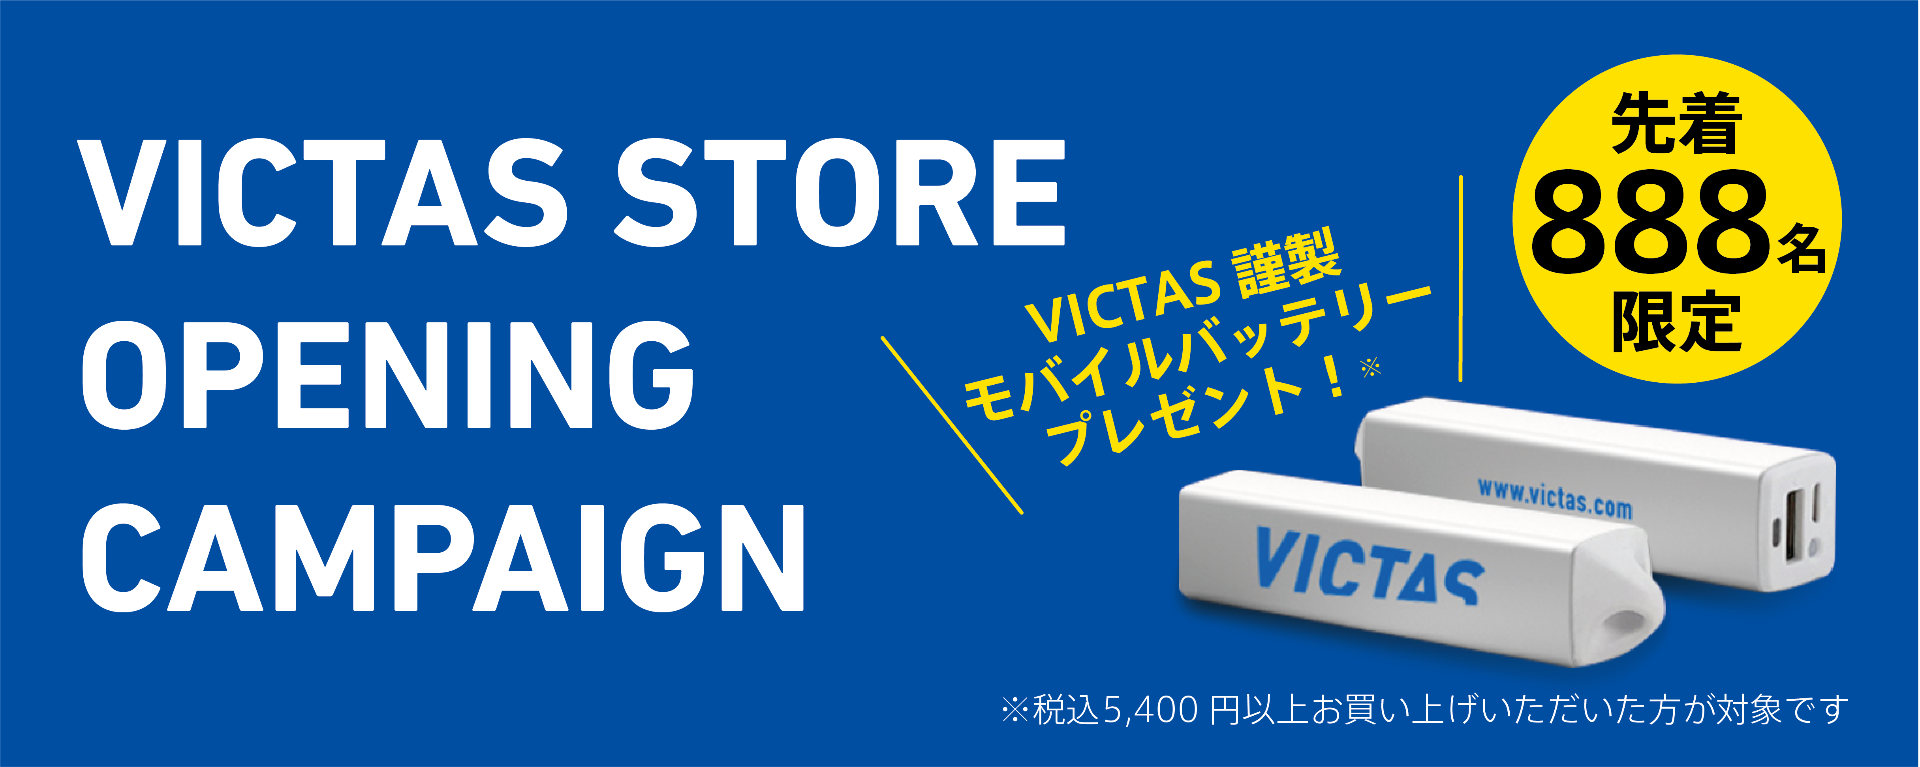 VICTAS STORE OPENING CAMPAIGN モバイルバッテリープレゼント